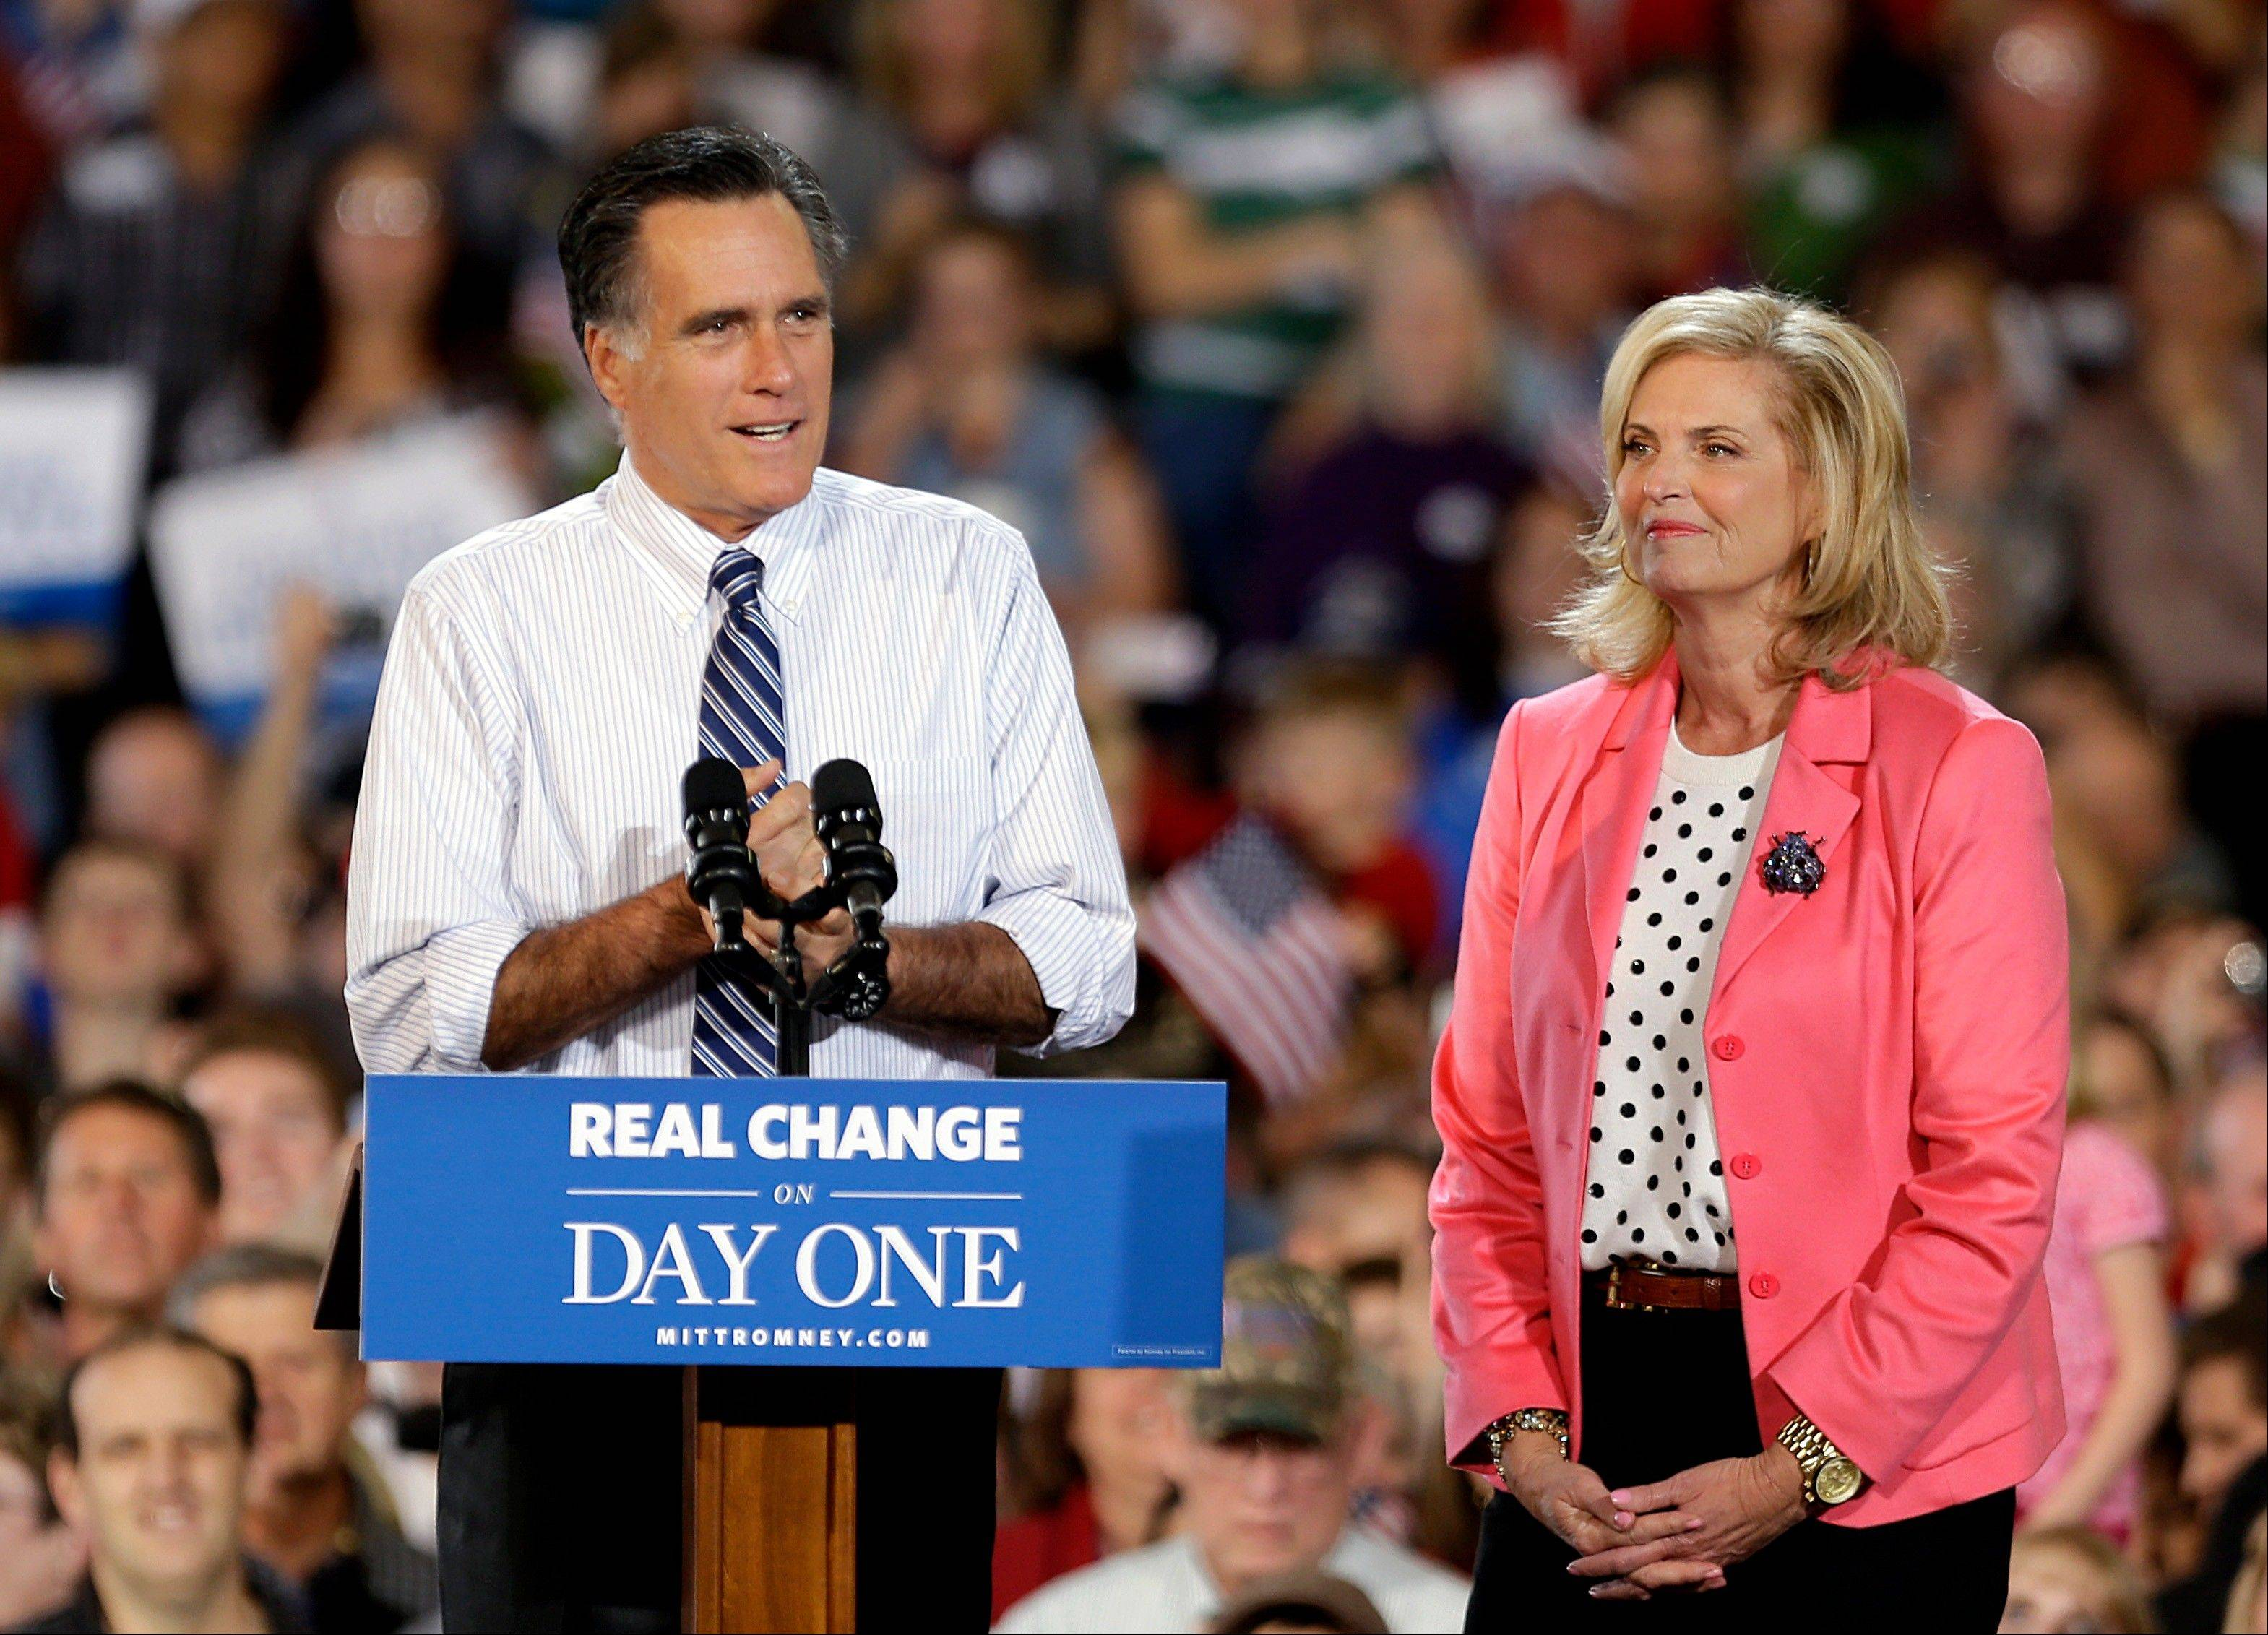 Republican presidential candidate, former Massachusetts Gov. Mitt Romney, left, steps to the podium Saturday after being introduced by his wife Ann, at a campaign event at Colorado Springs Municipal Airport.